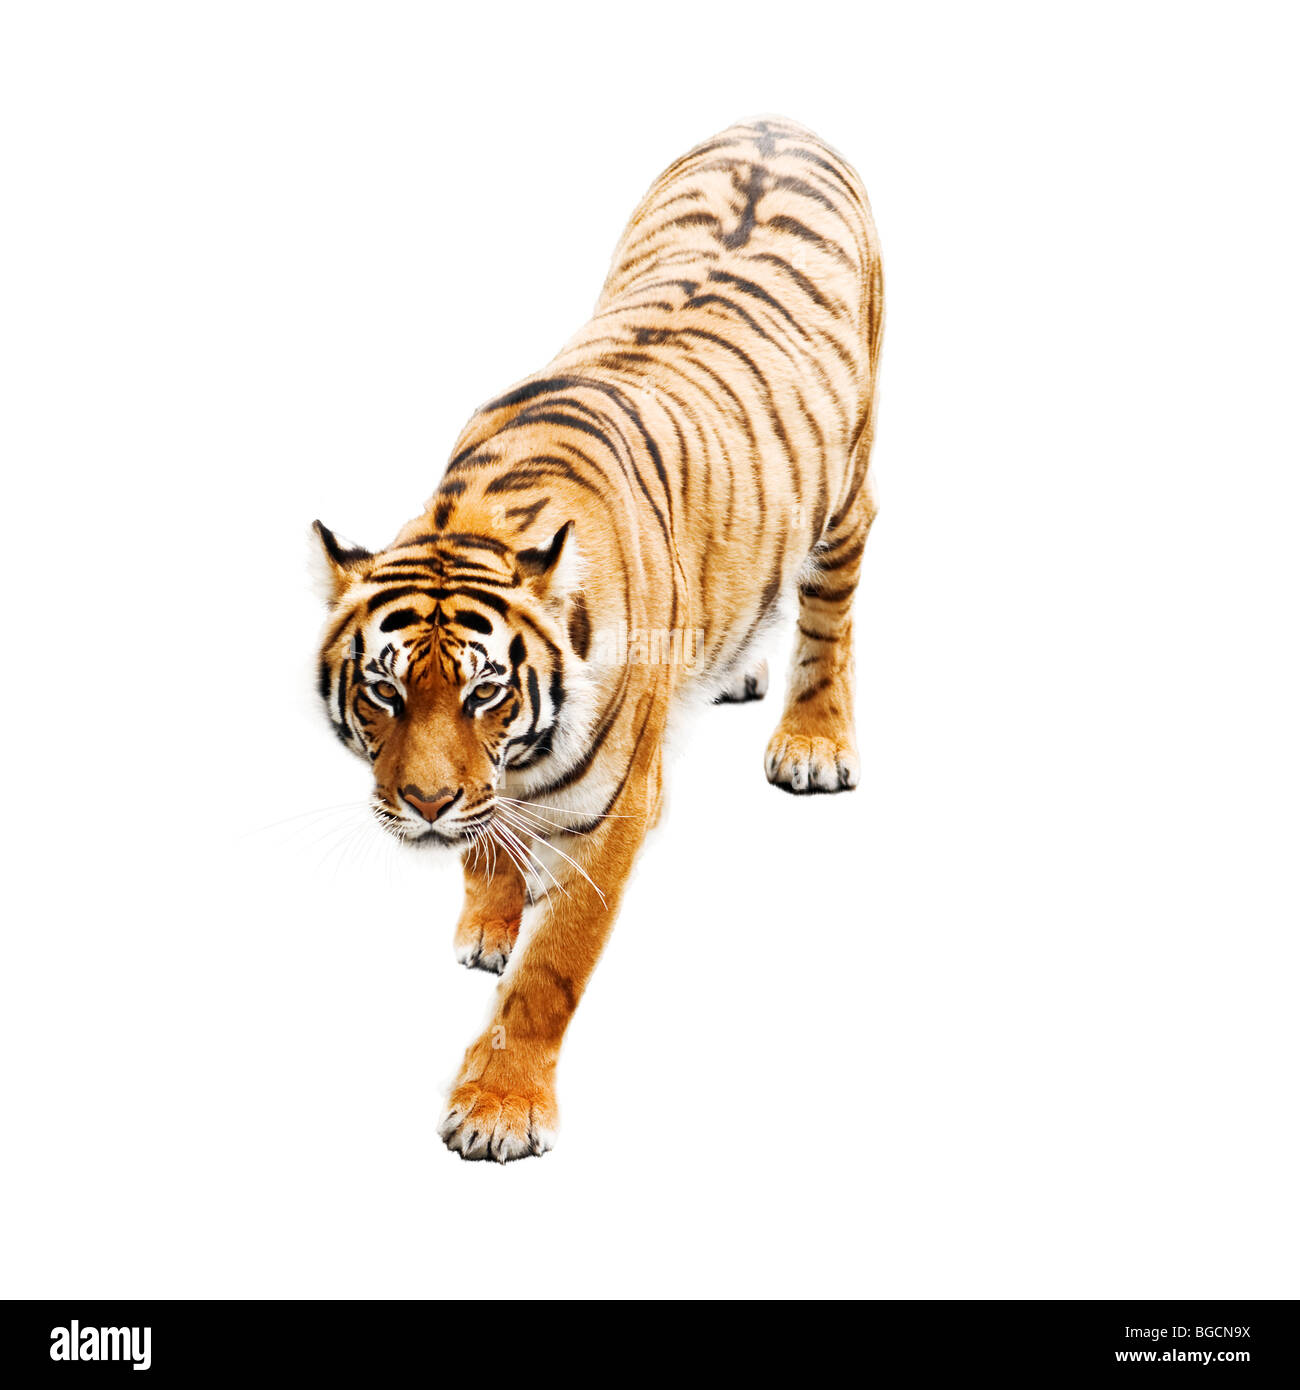 tiger isolated on white - Stock Image